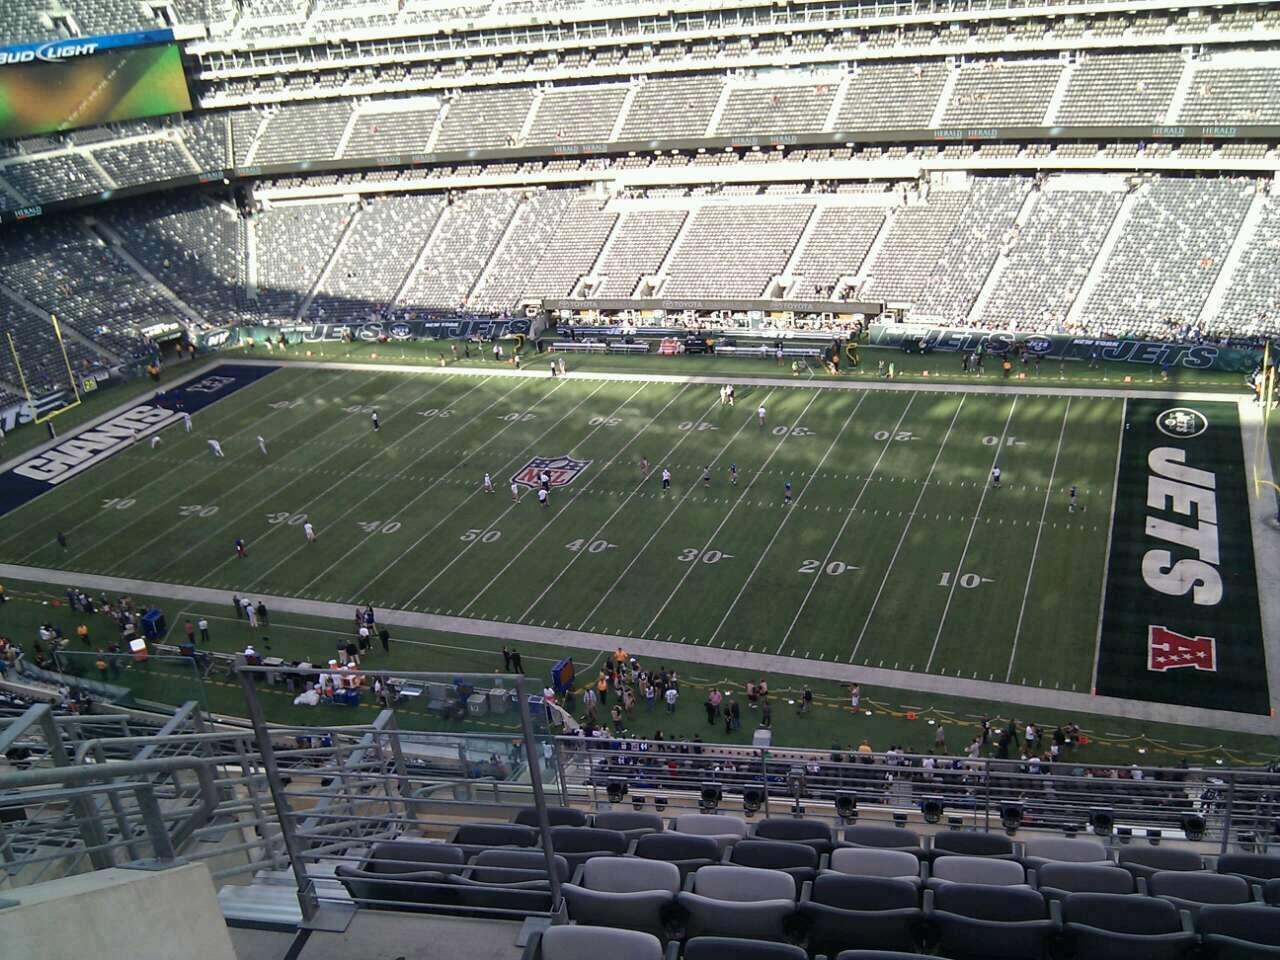 MetLife Stadium Section 335 Row 12 Seat 20